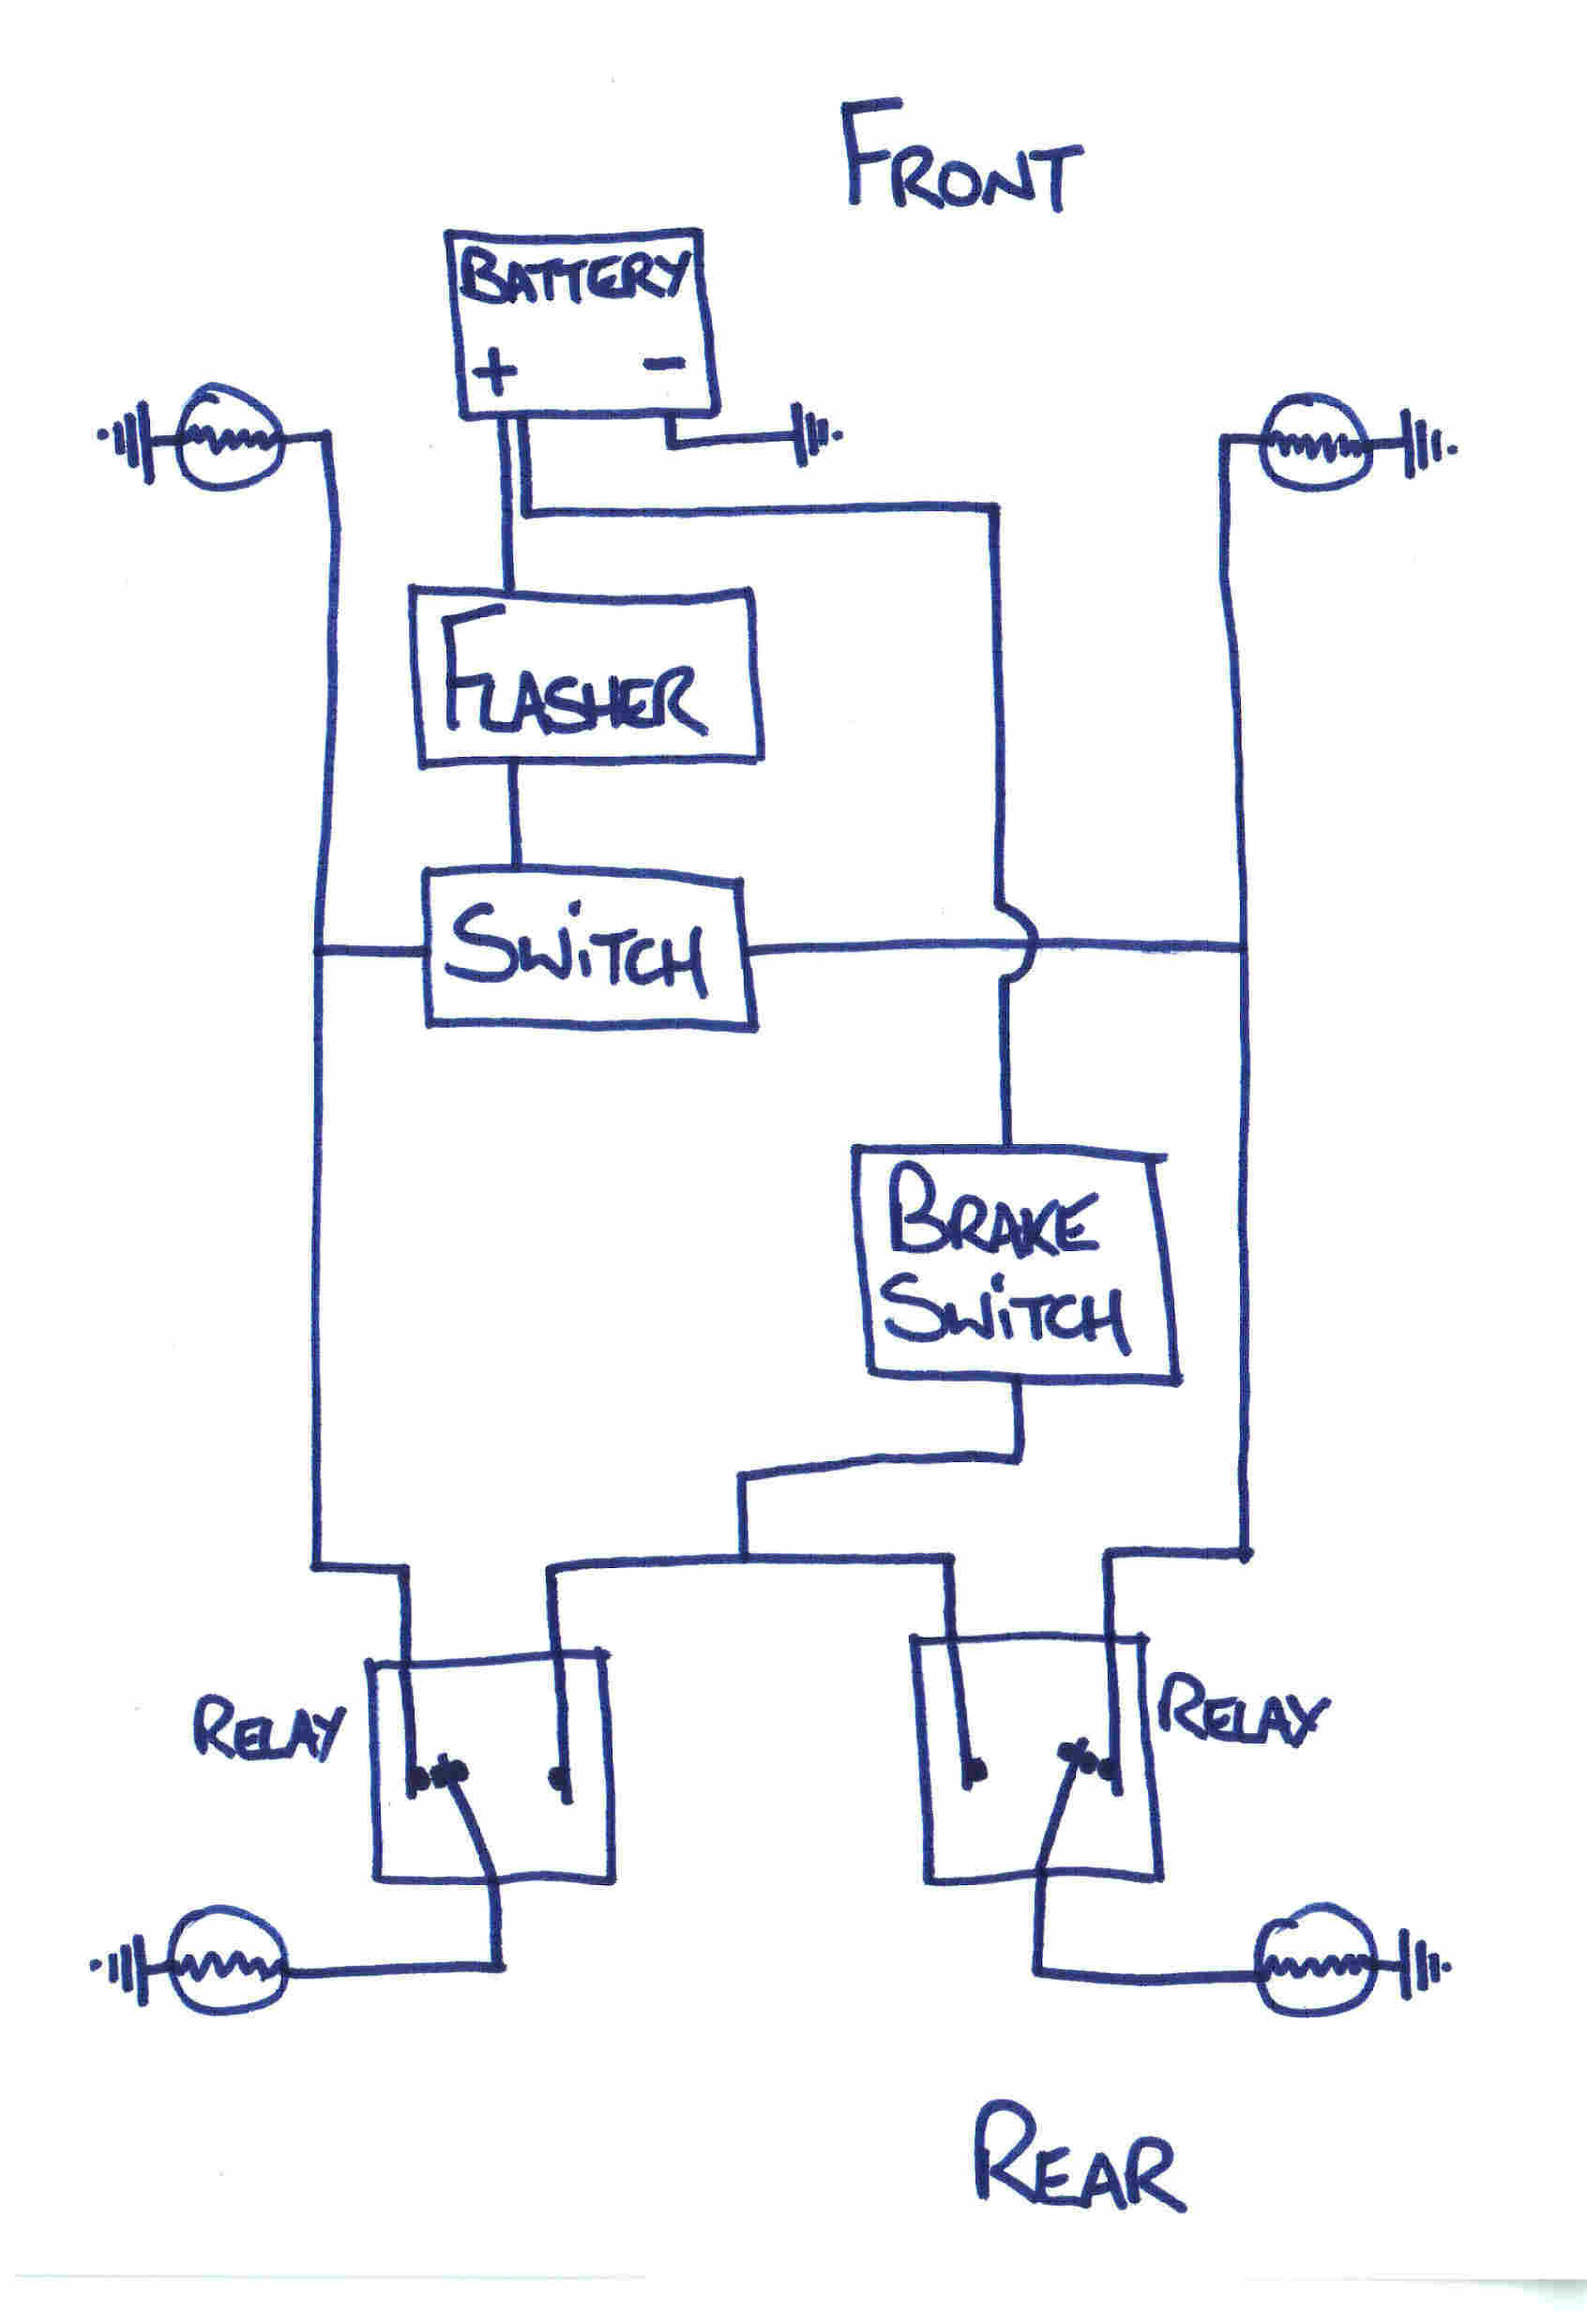 modern flasher circuits rh da7c co uk wiring diagram for flashing indicators simple wiring diagram for indicators